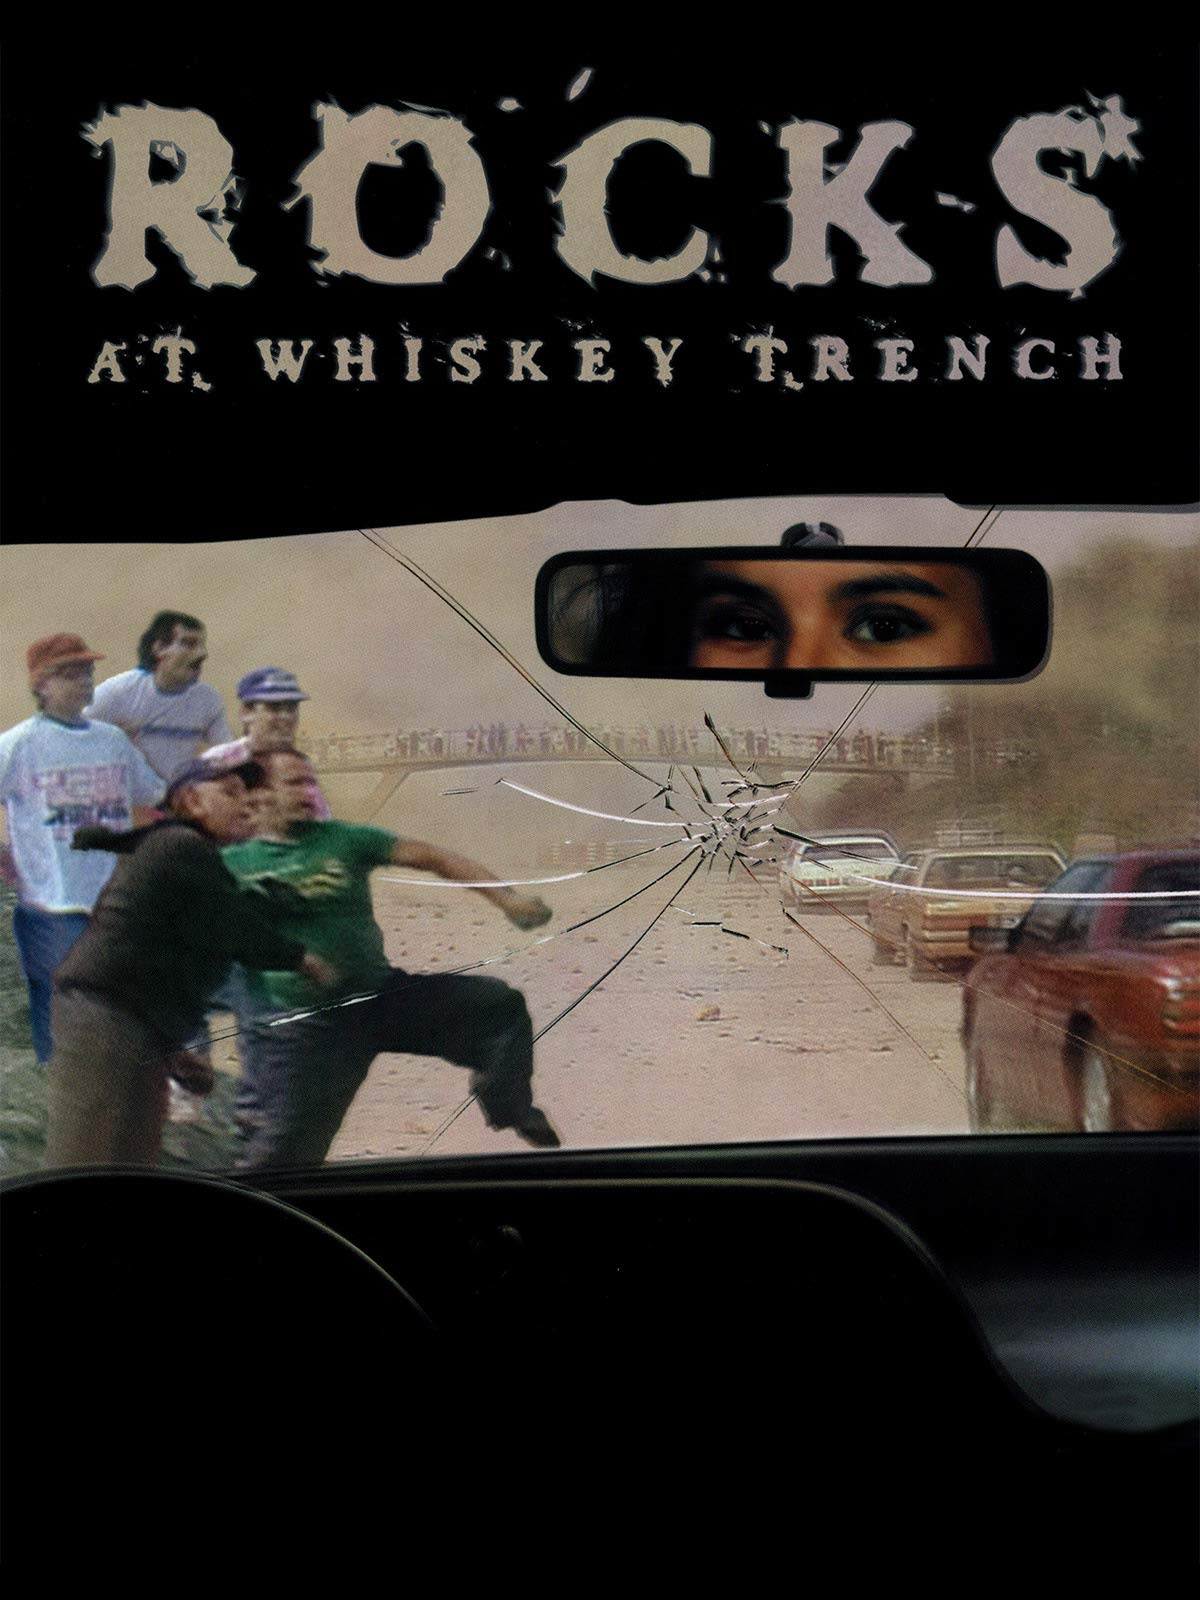 Rocks at Whiskey Trench